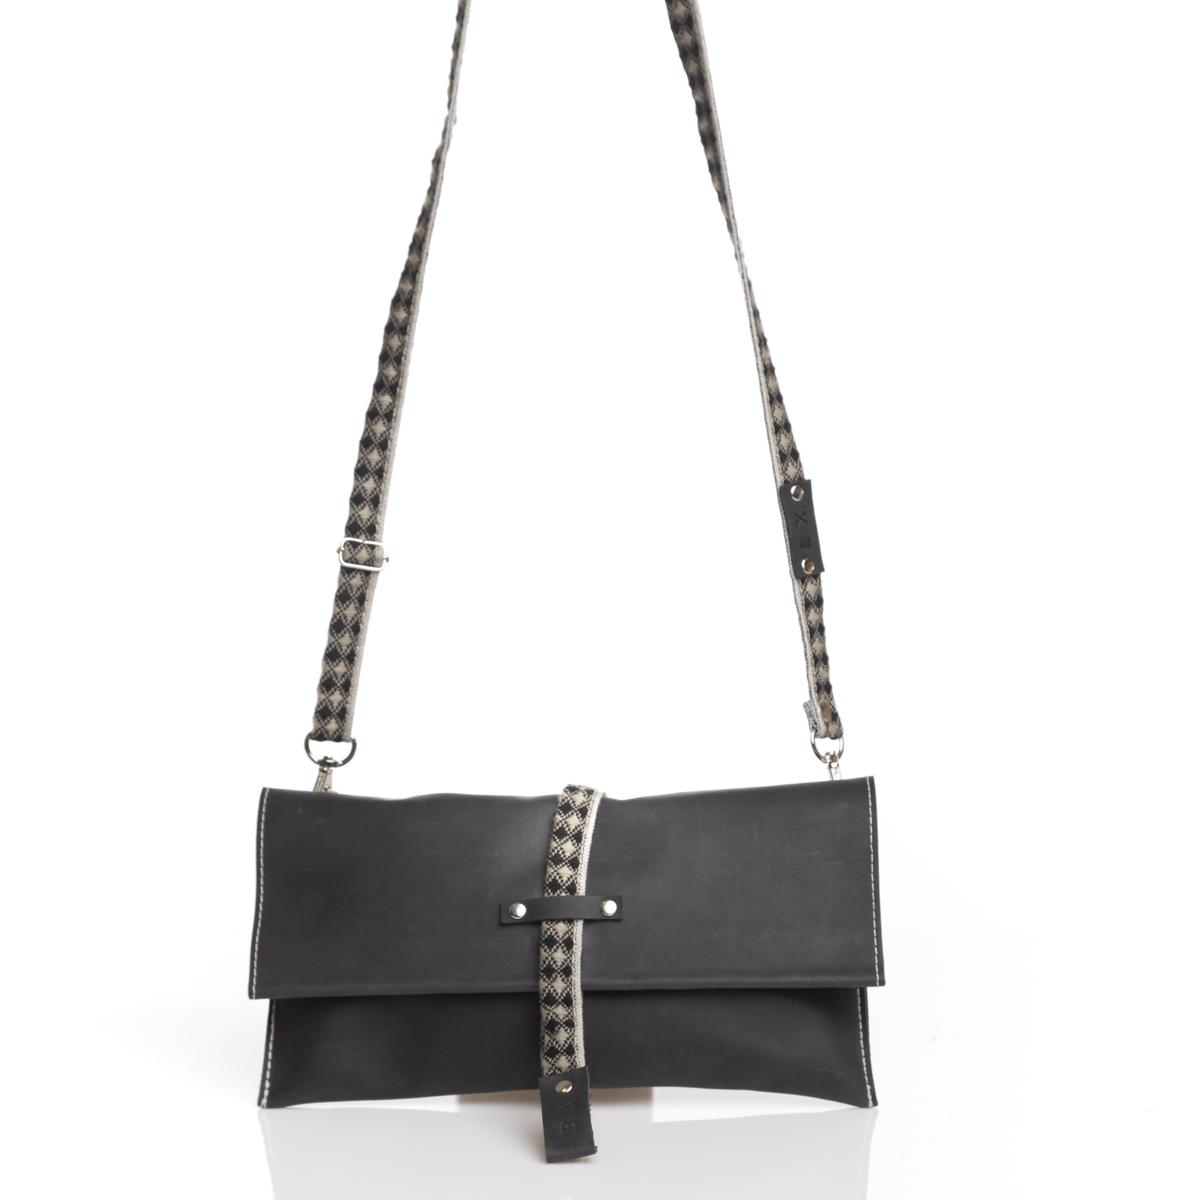 MINI BAG BLACK & GRAY